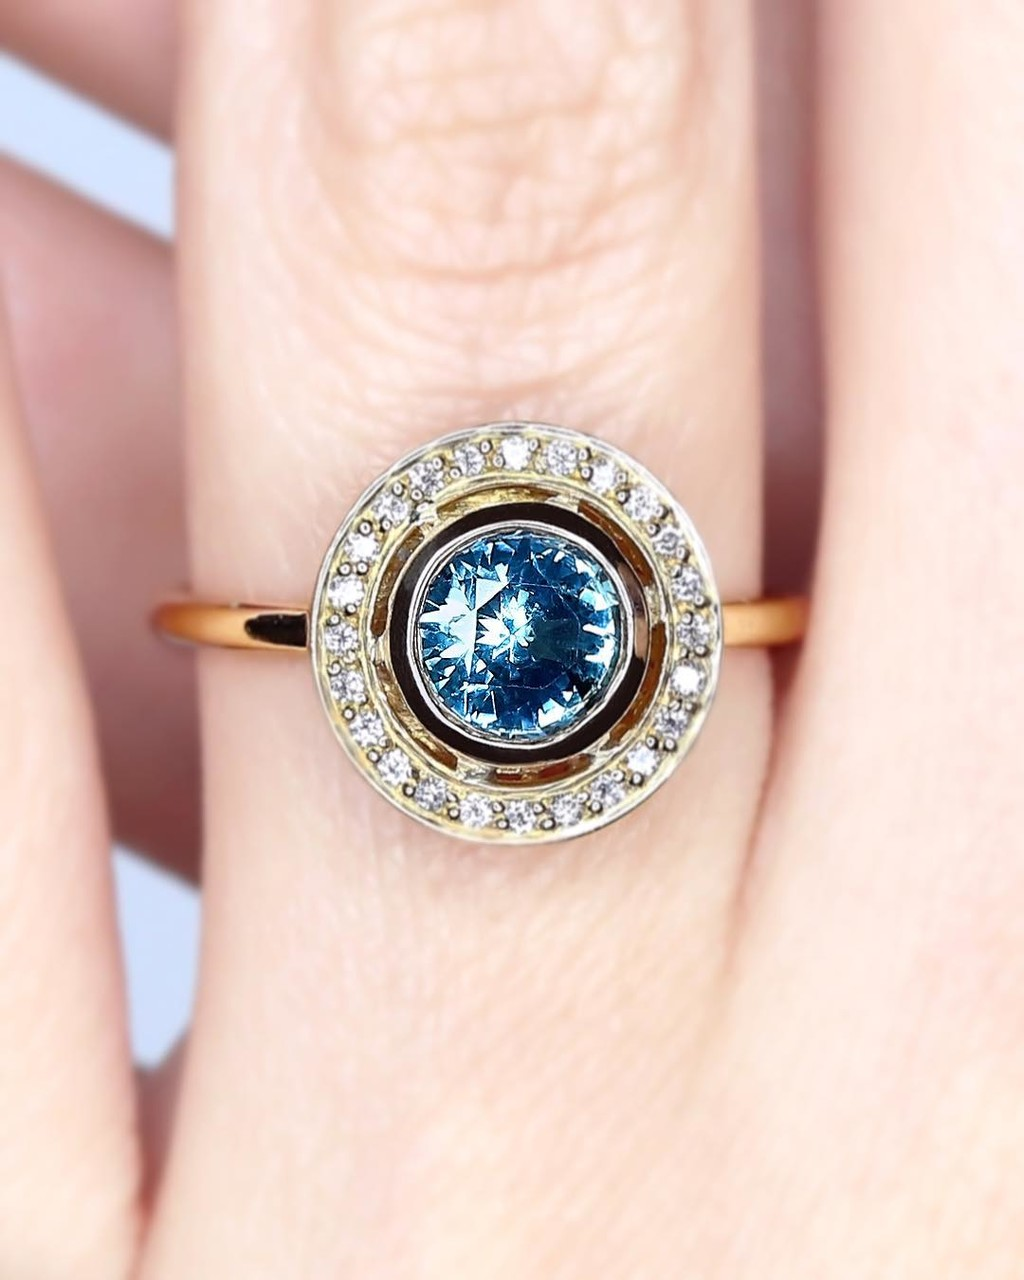 💫💙🌞 Don't you just love the combo of rich recycled gold and this stunning Montana Sapphire?